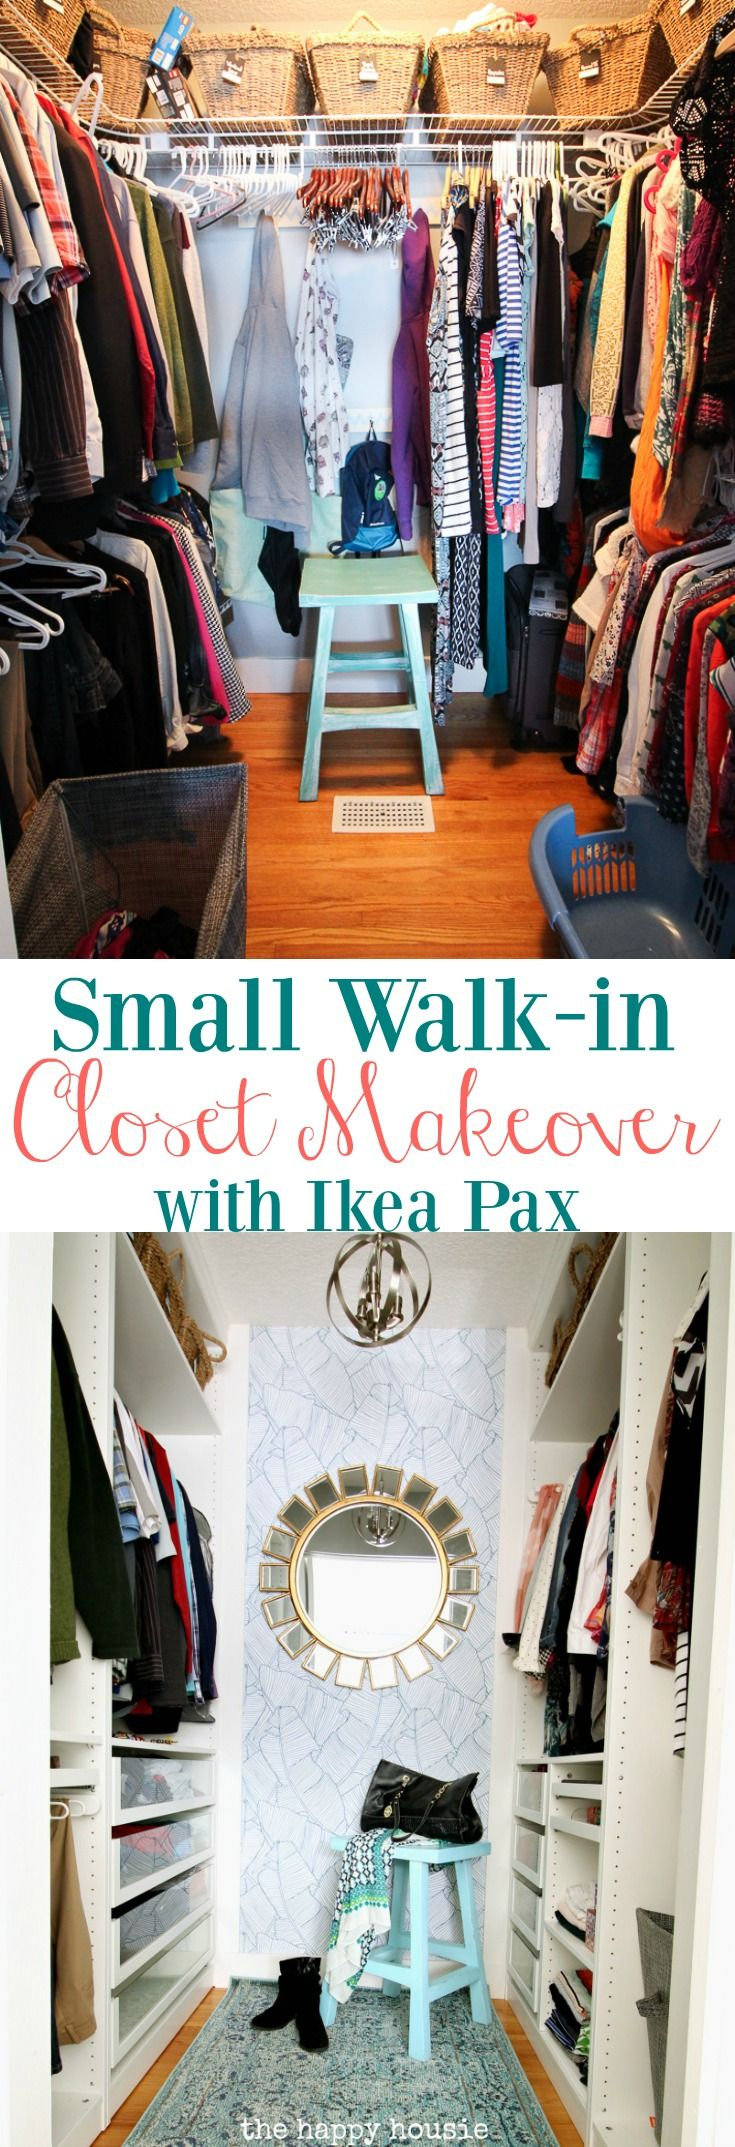 walk in closet design small walk in closet makeover reveal with ikea pax 31618